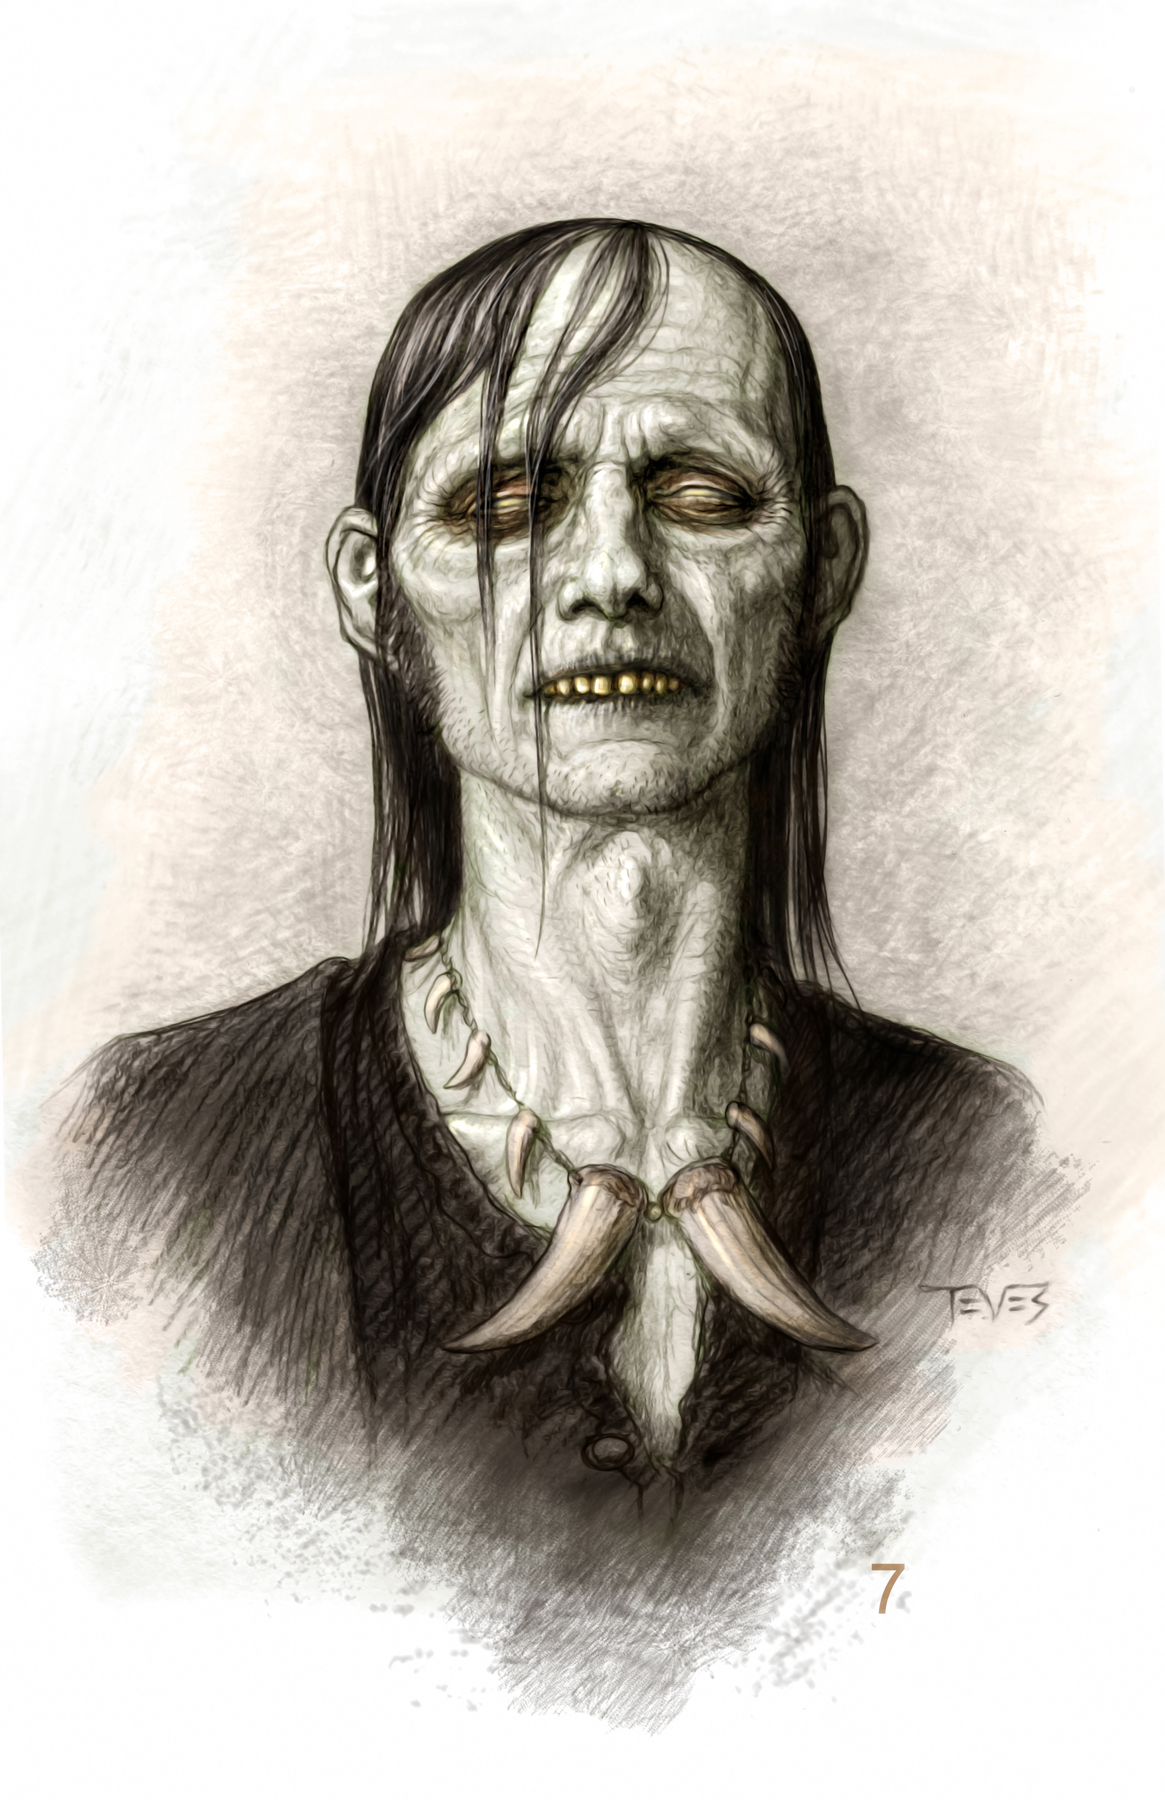 http://collider.com/wp-content/uploads/pirates-of-the-caribbean-on-stranger-tides-concept-art-zombie-03.jpg